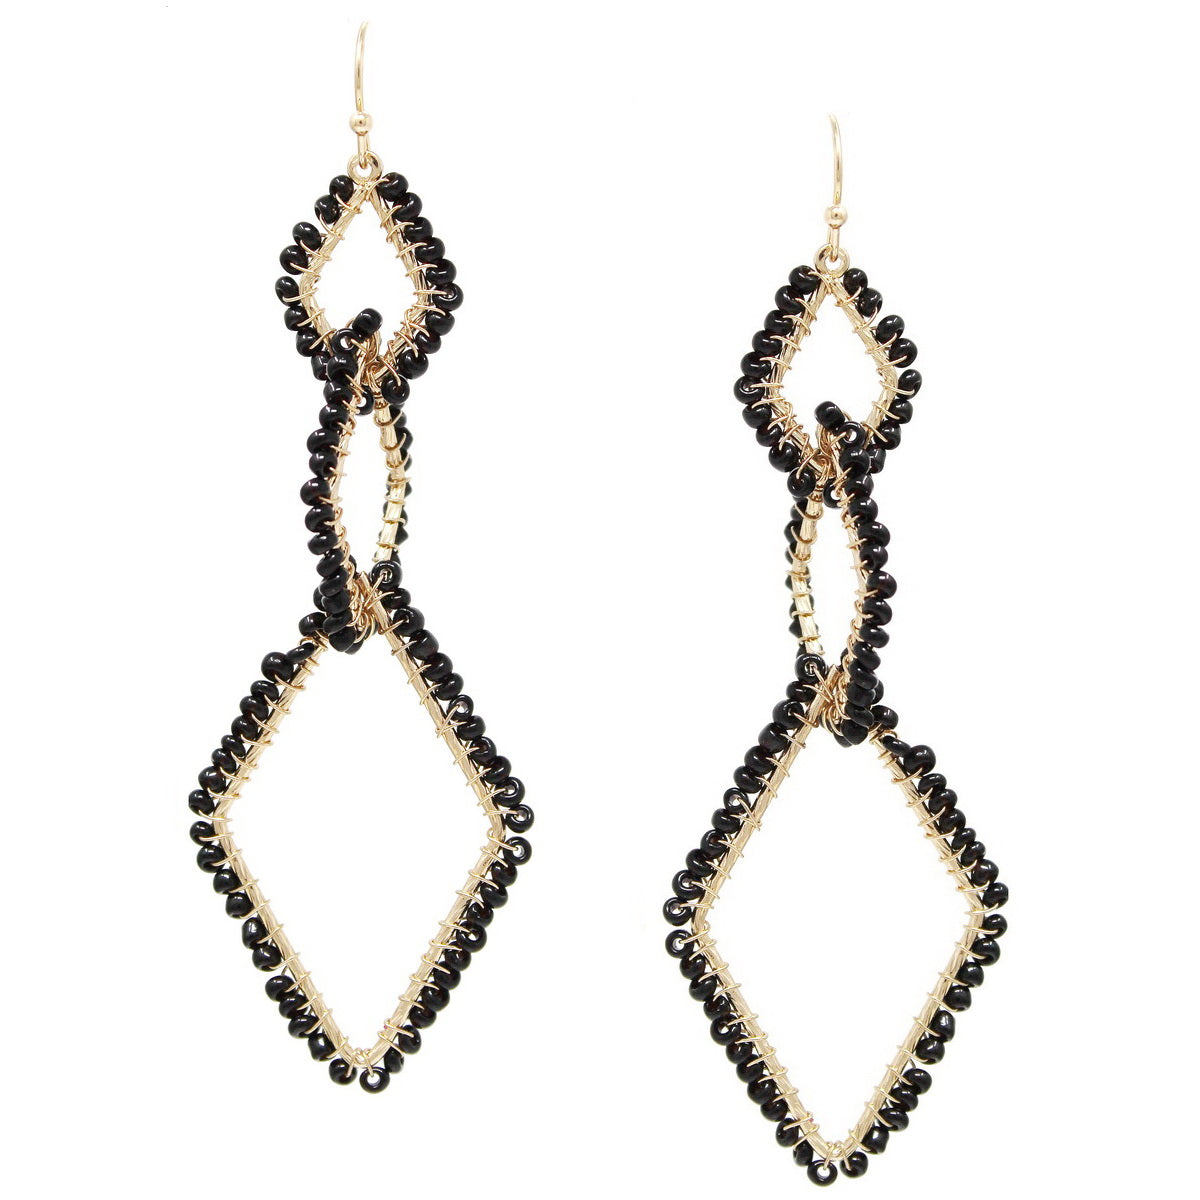 Seed Bead Wrapped Triple Rhombus Hoop Drop Earrings